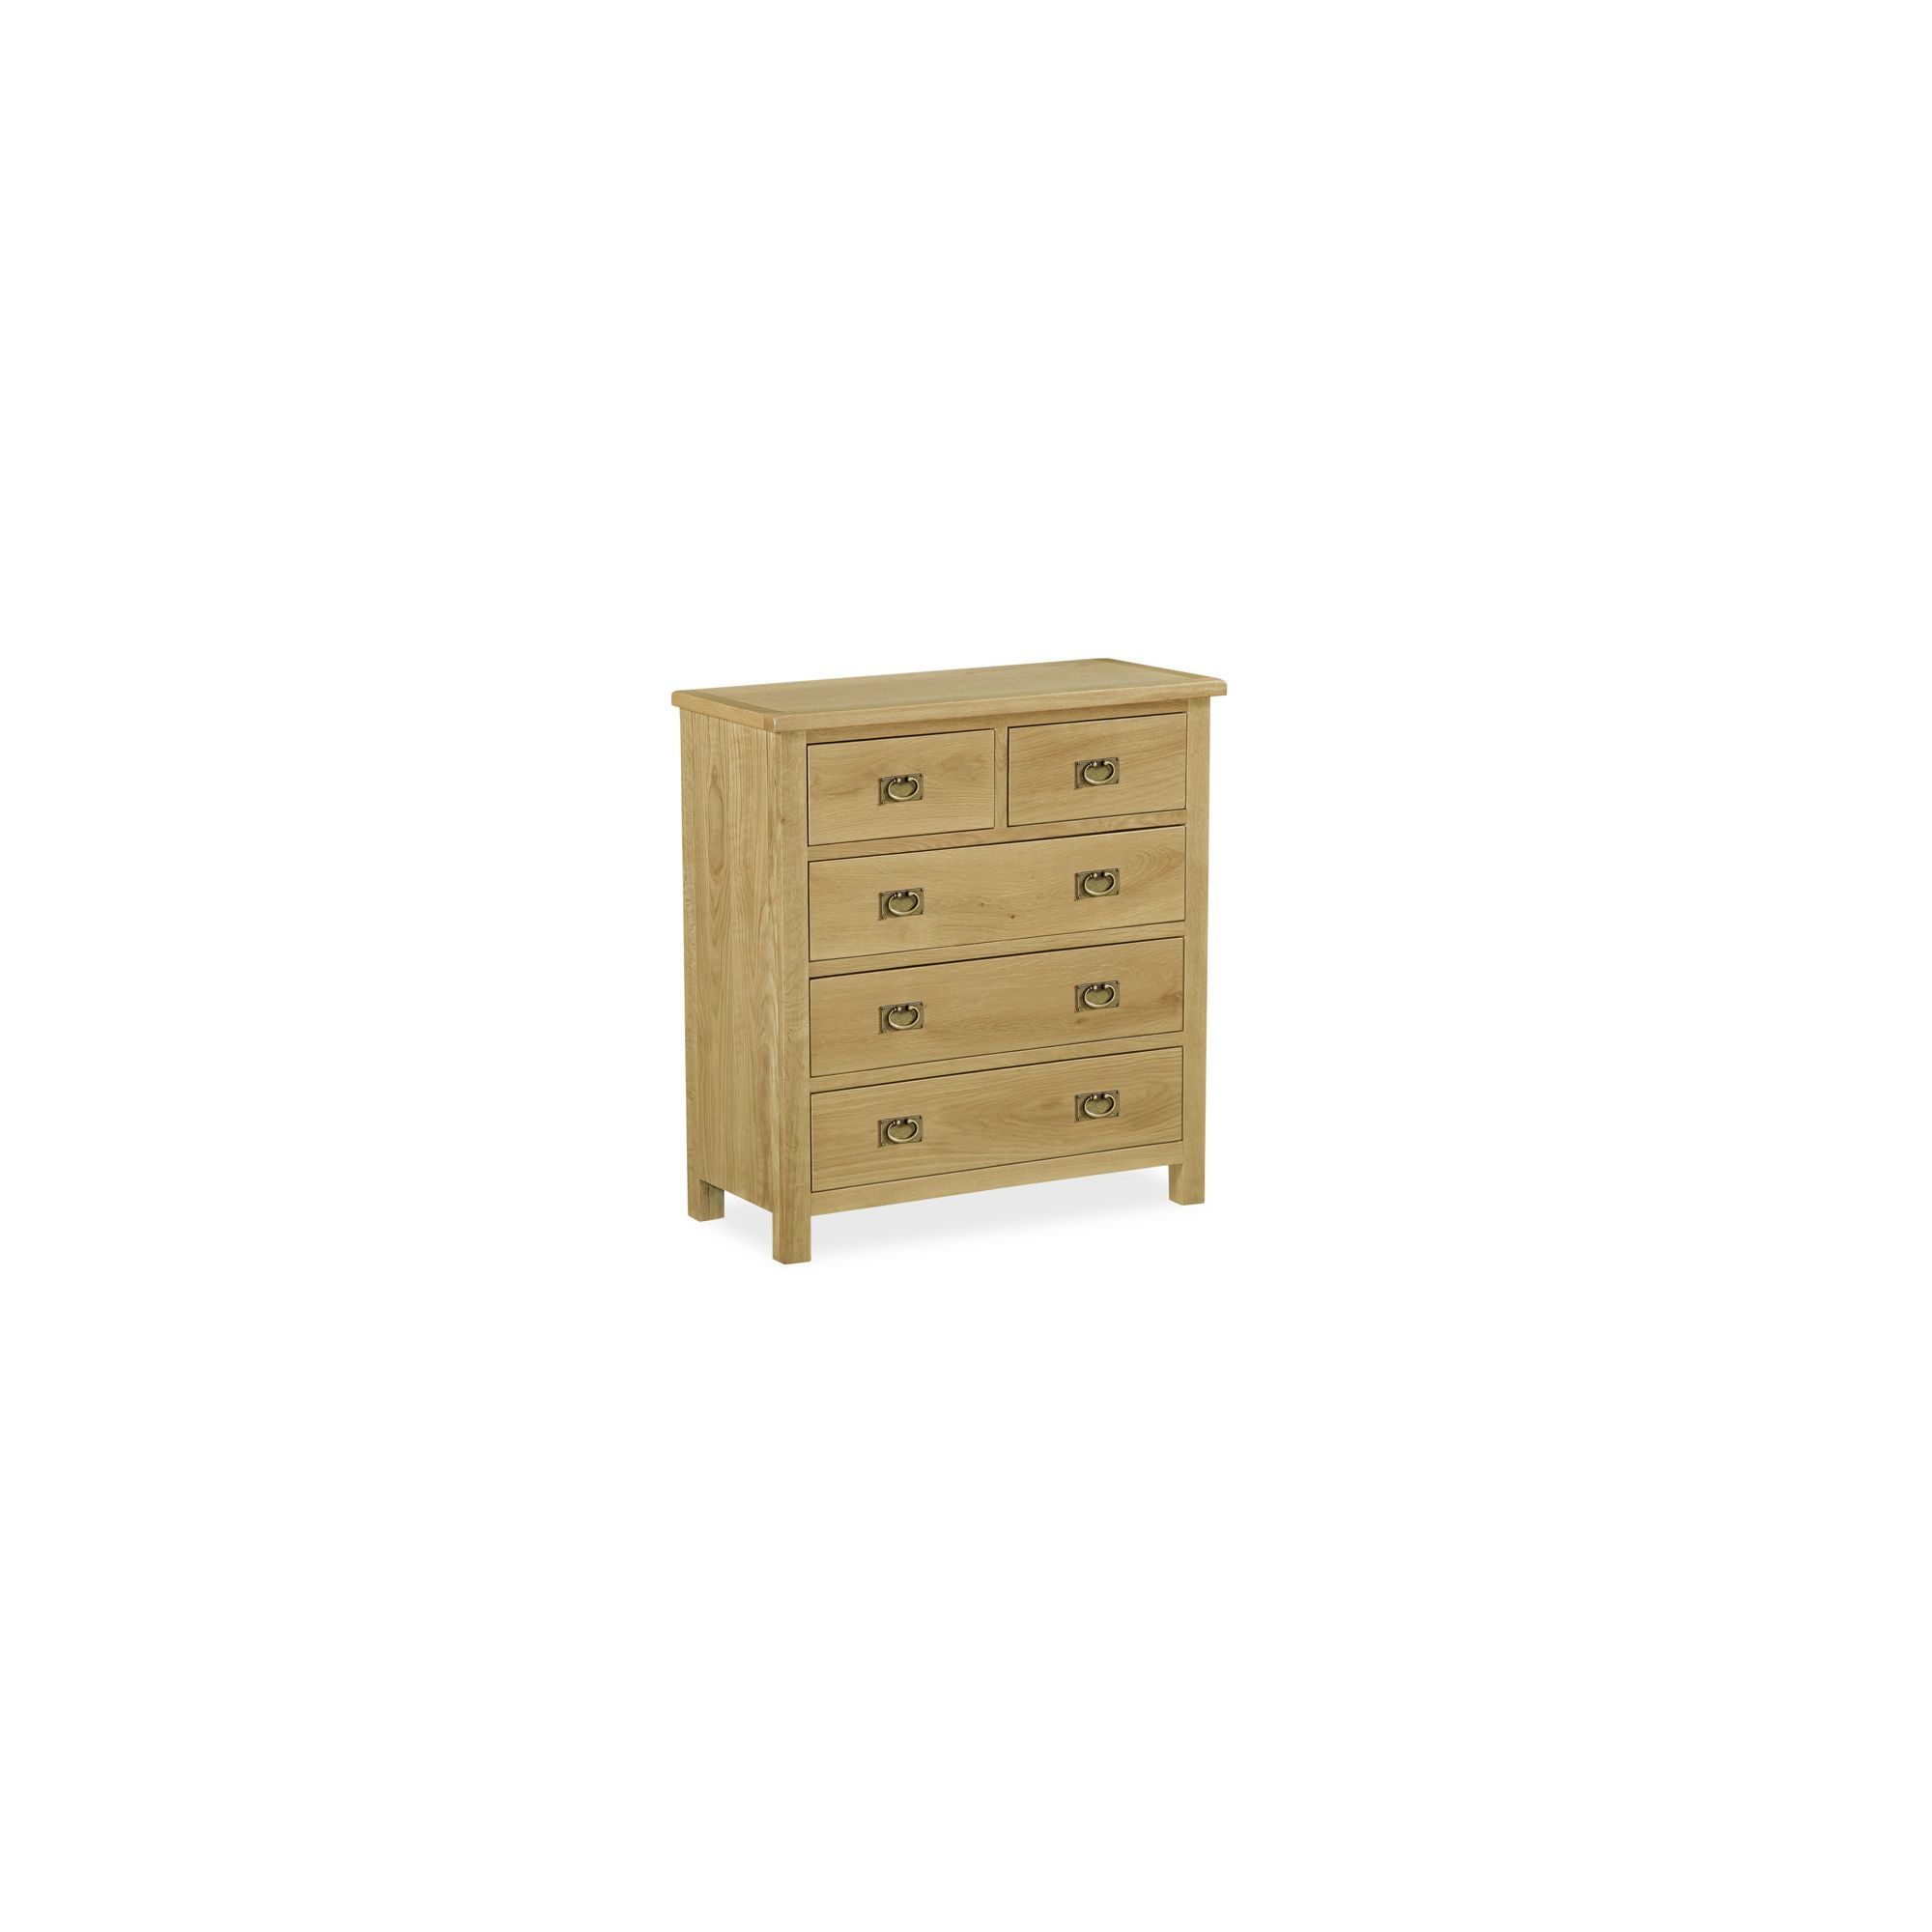 Alterton Furniture Pemberley Petite 2 Over 3 Drawer Chest at Tescos Direct